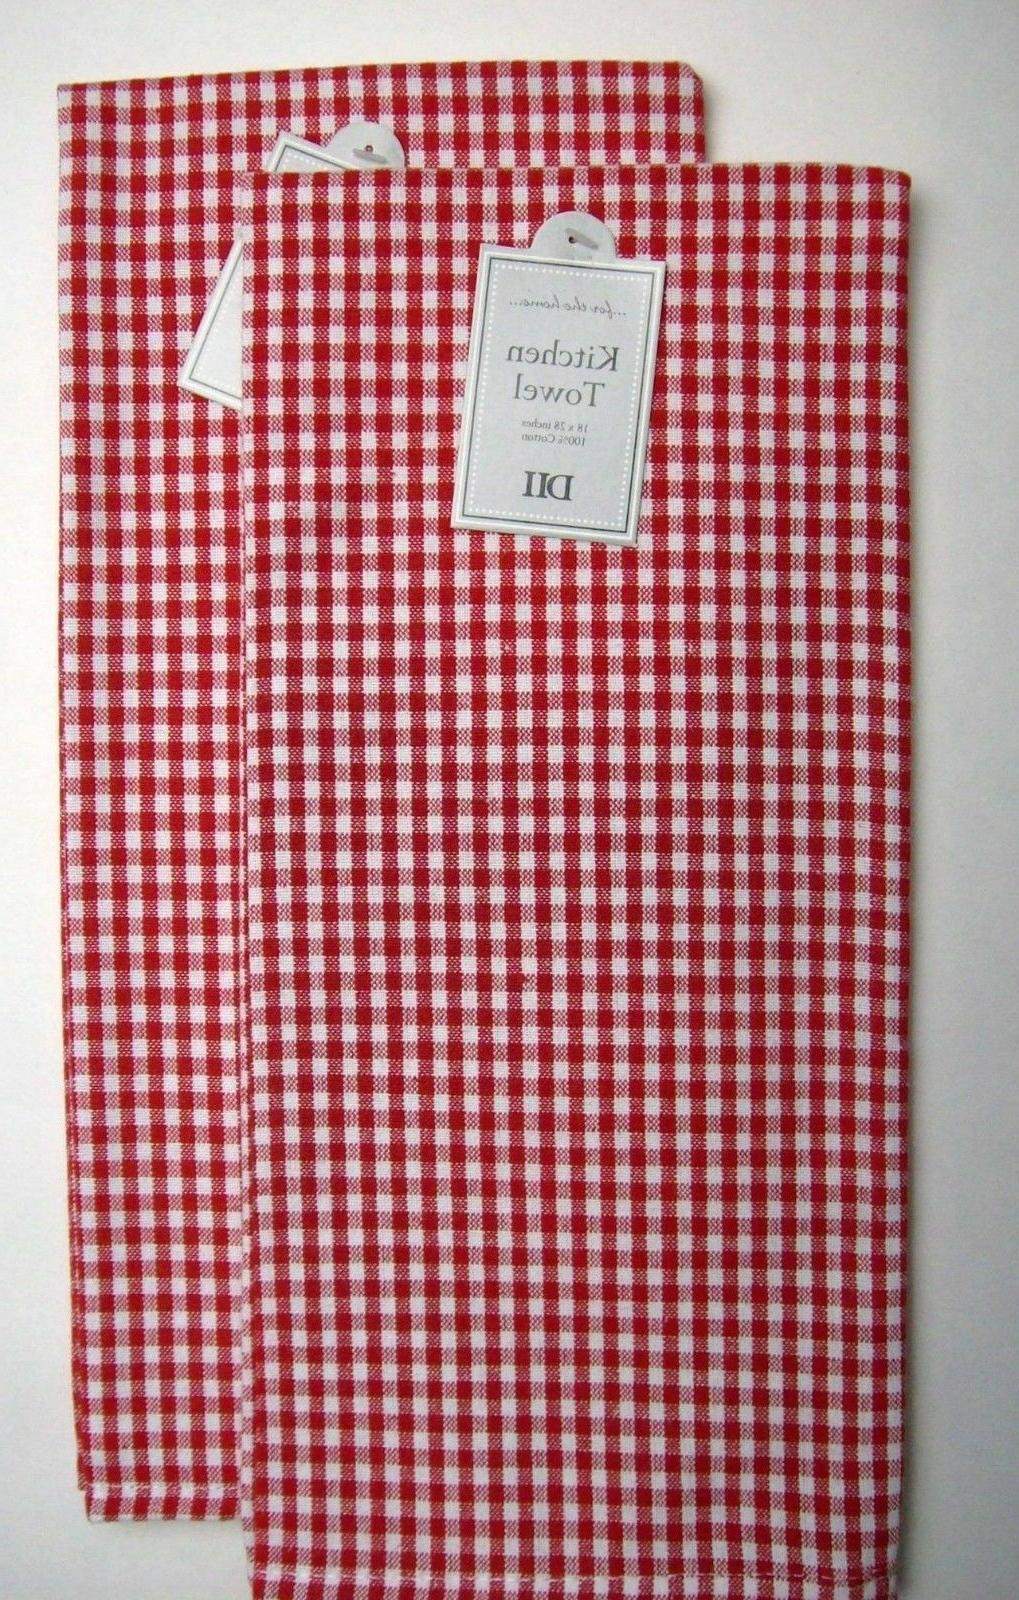 Set of 2 Red & White Gingham Small Check Cotton Dish Towels